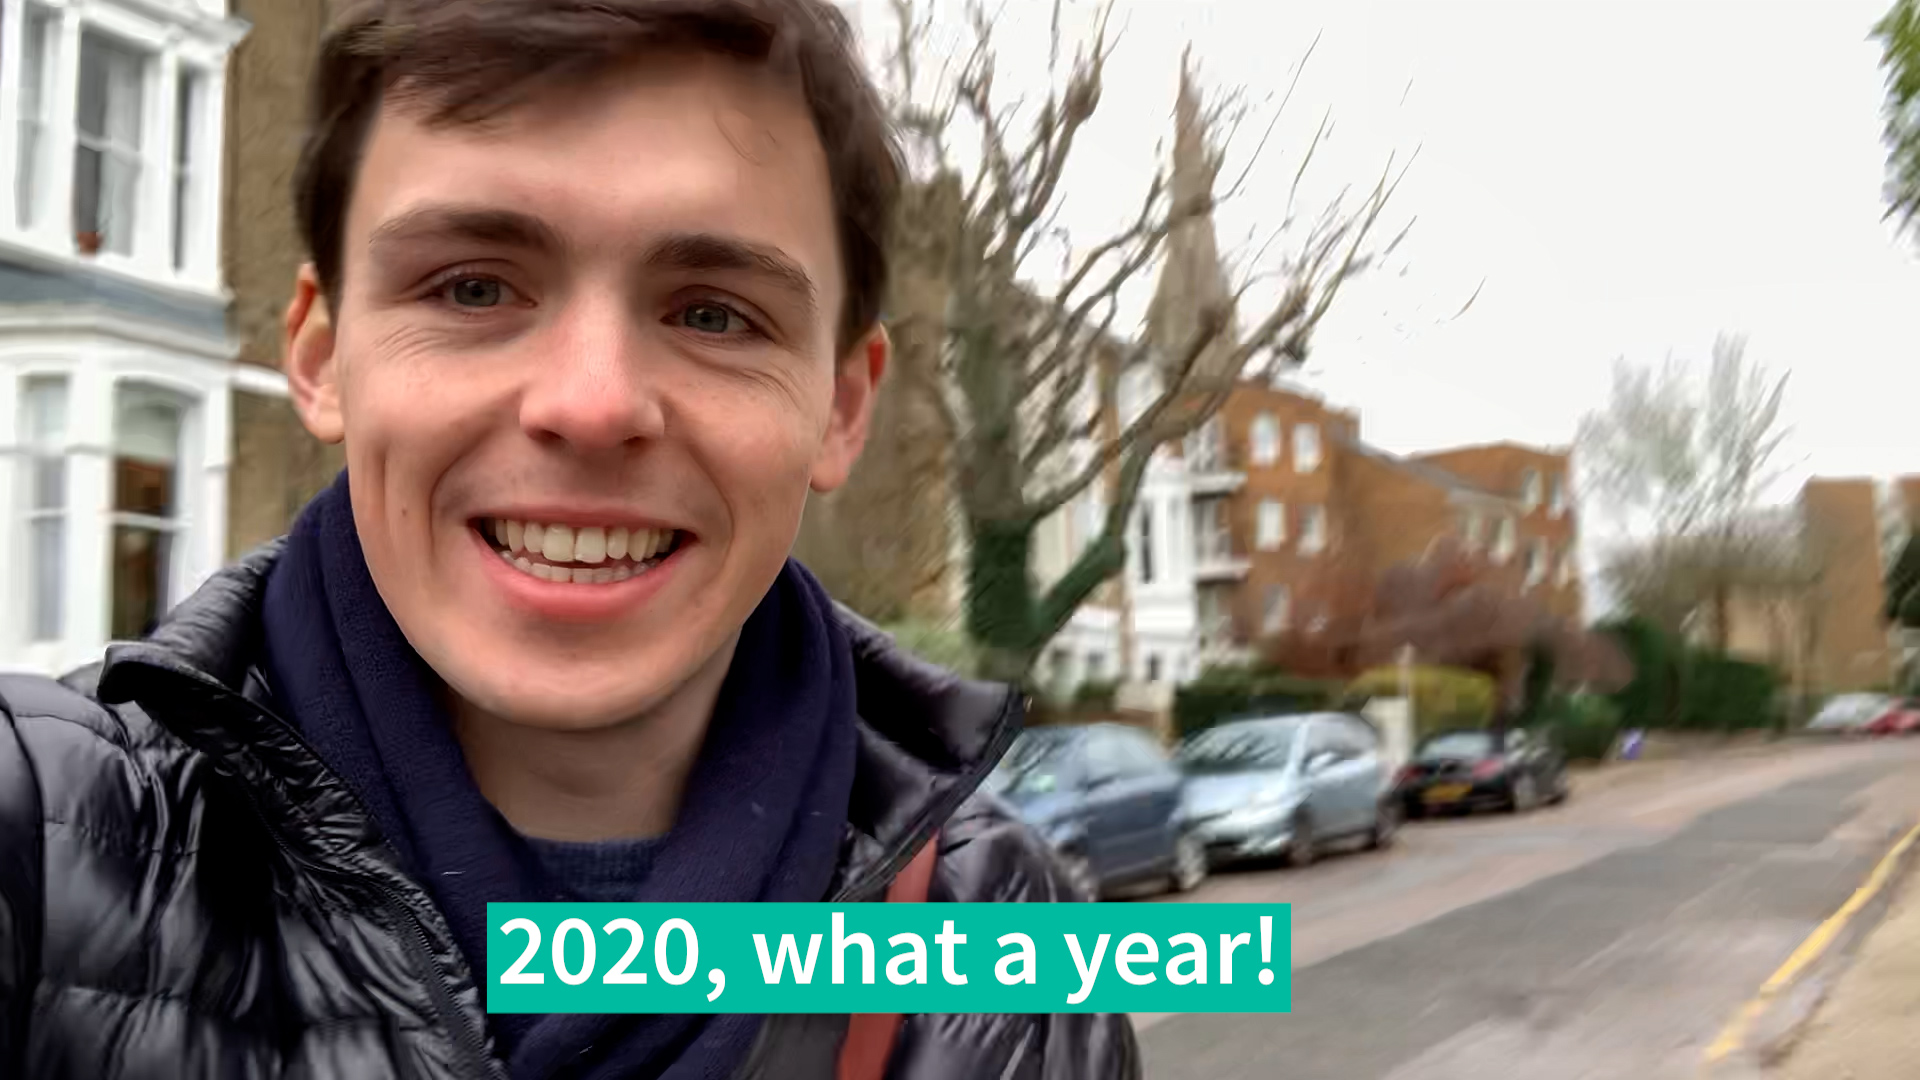 Trilo Vlog #9 - 2020, what a year!